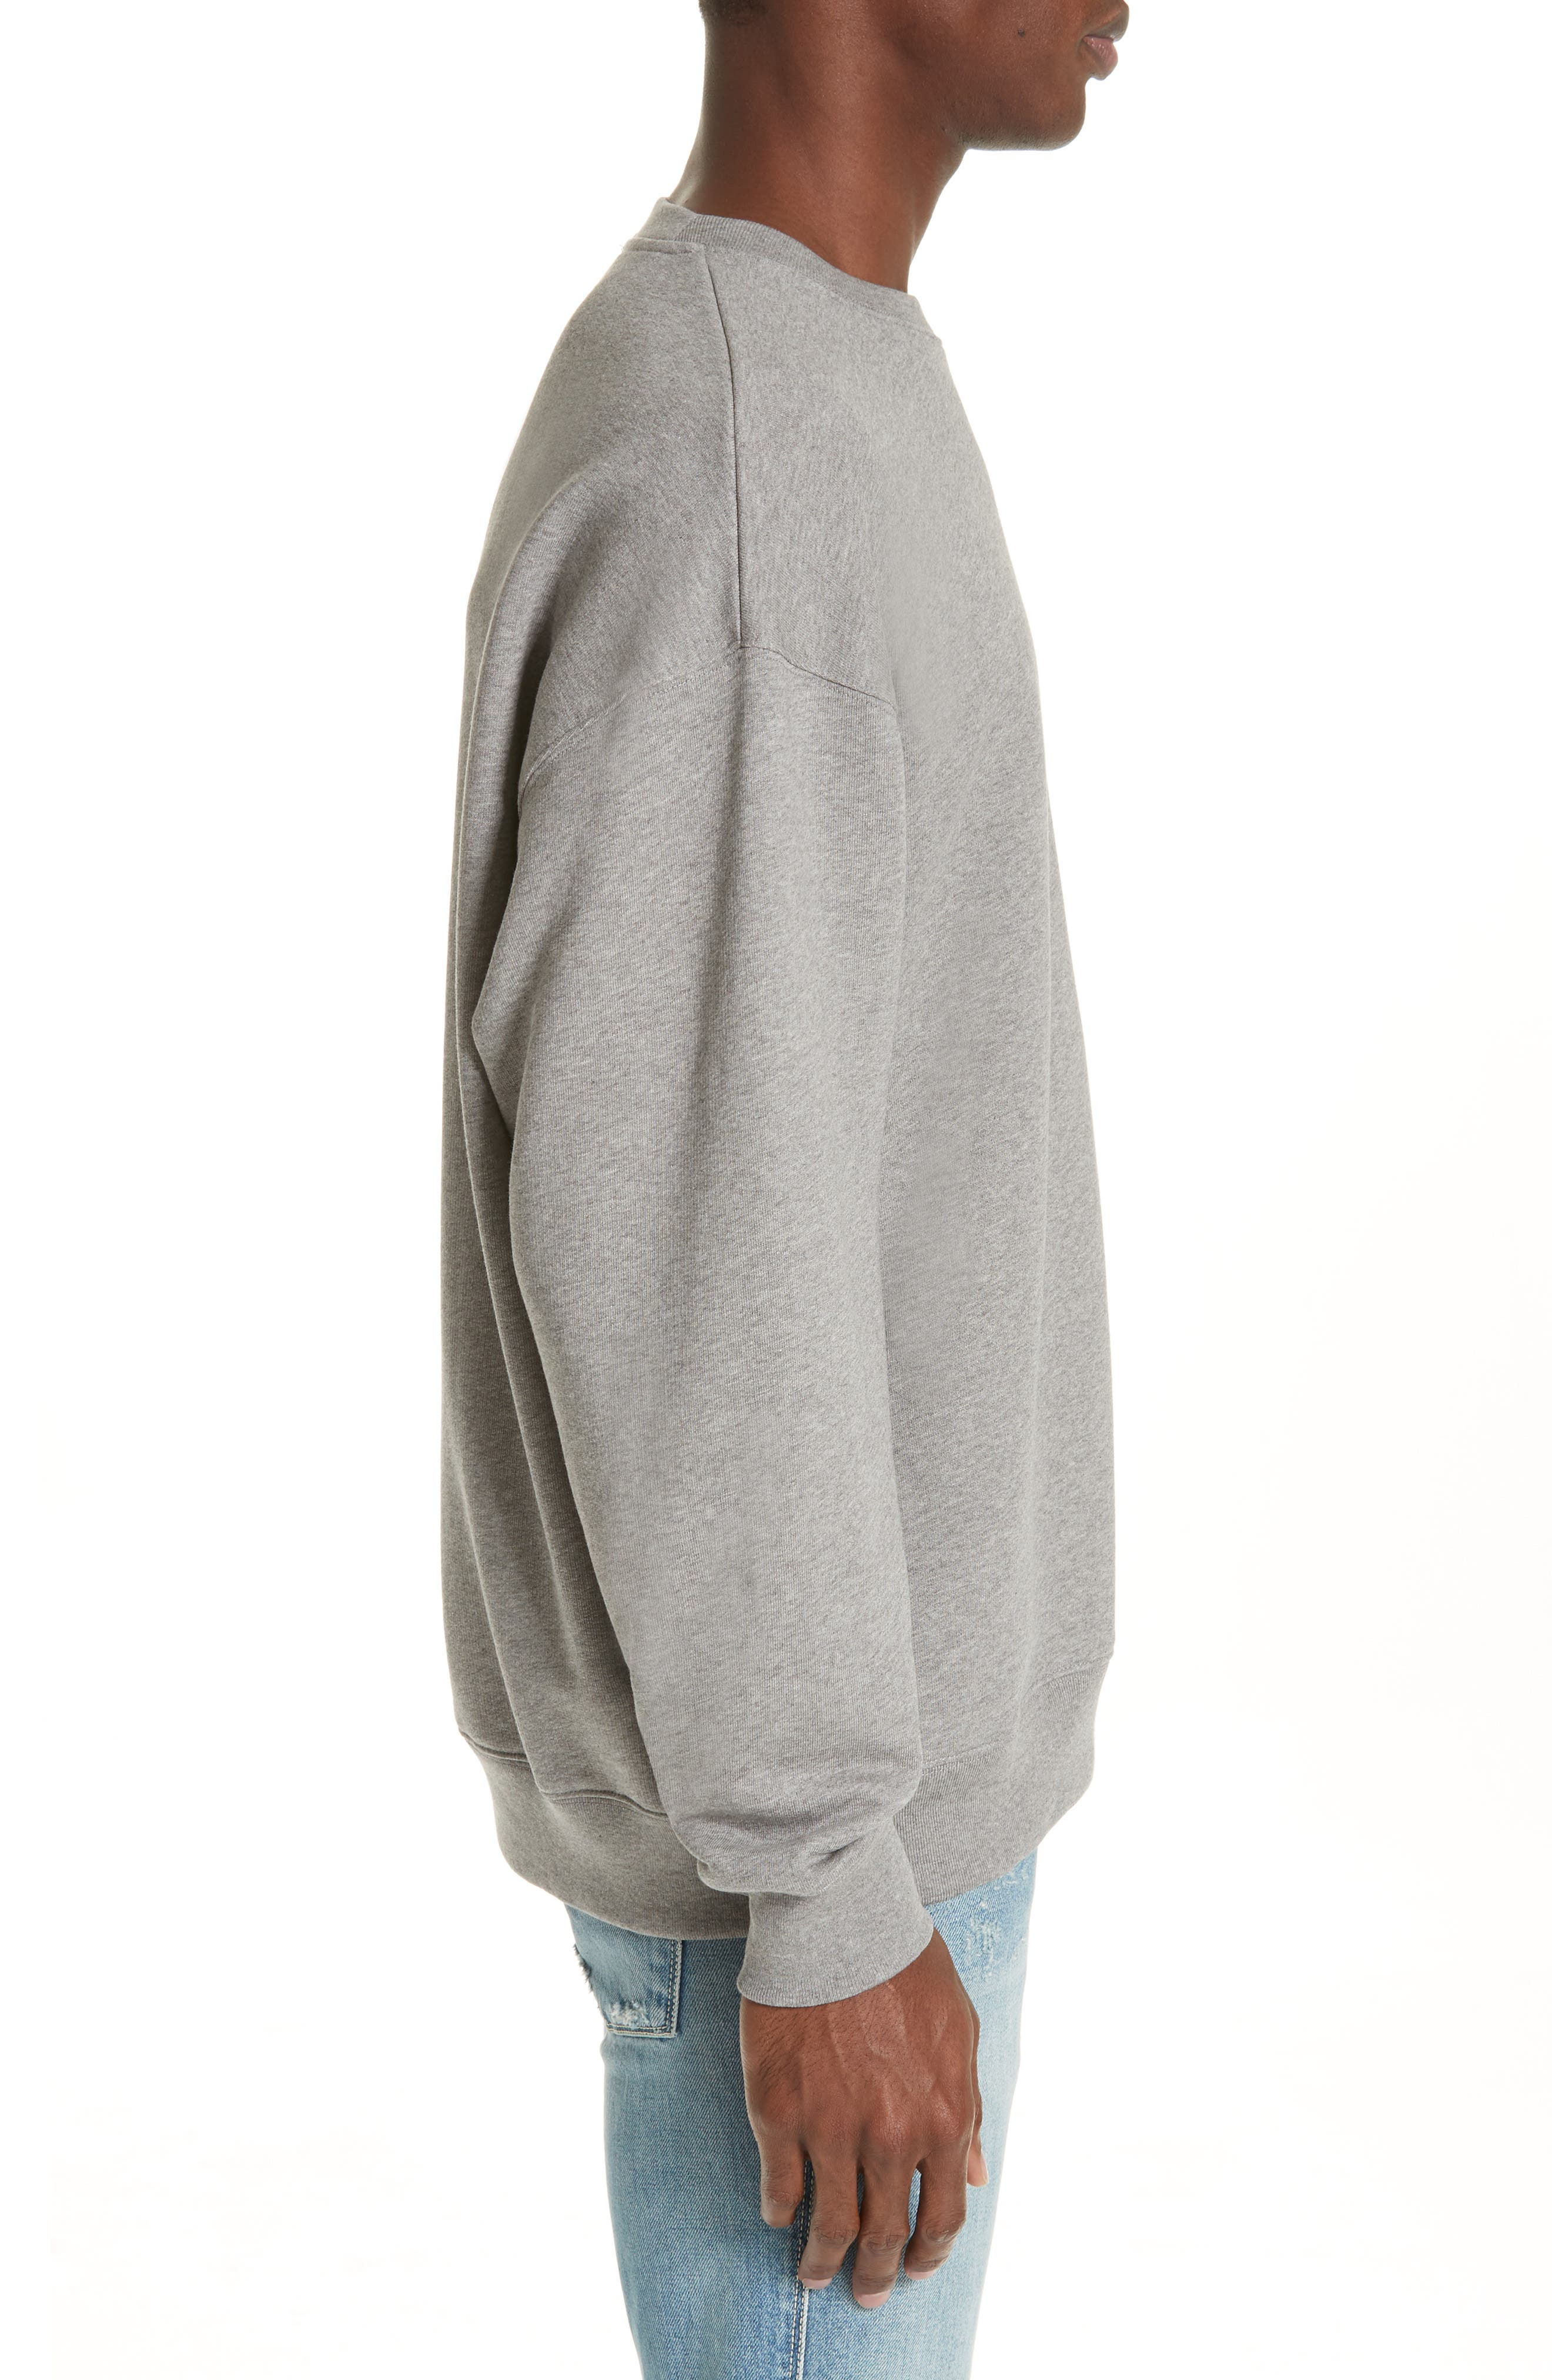 ACNE STUDIOS,                             Forba Face Sweatshirt,                             Alternate thumbnail 3, color,                             LIGHT GREY MELANGE